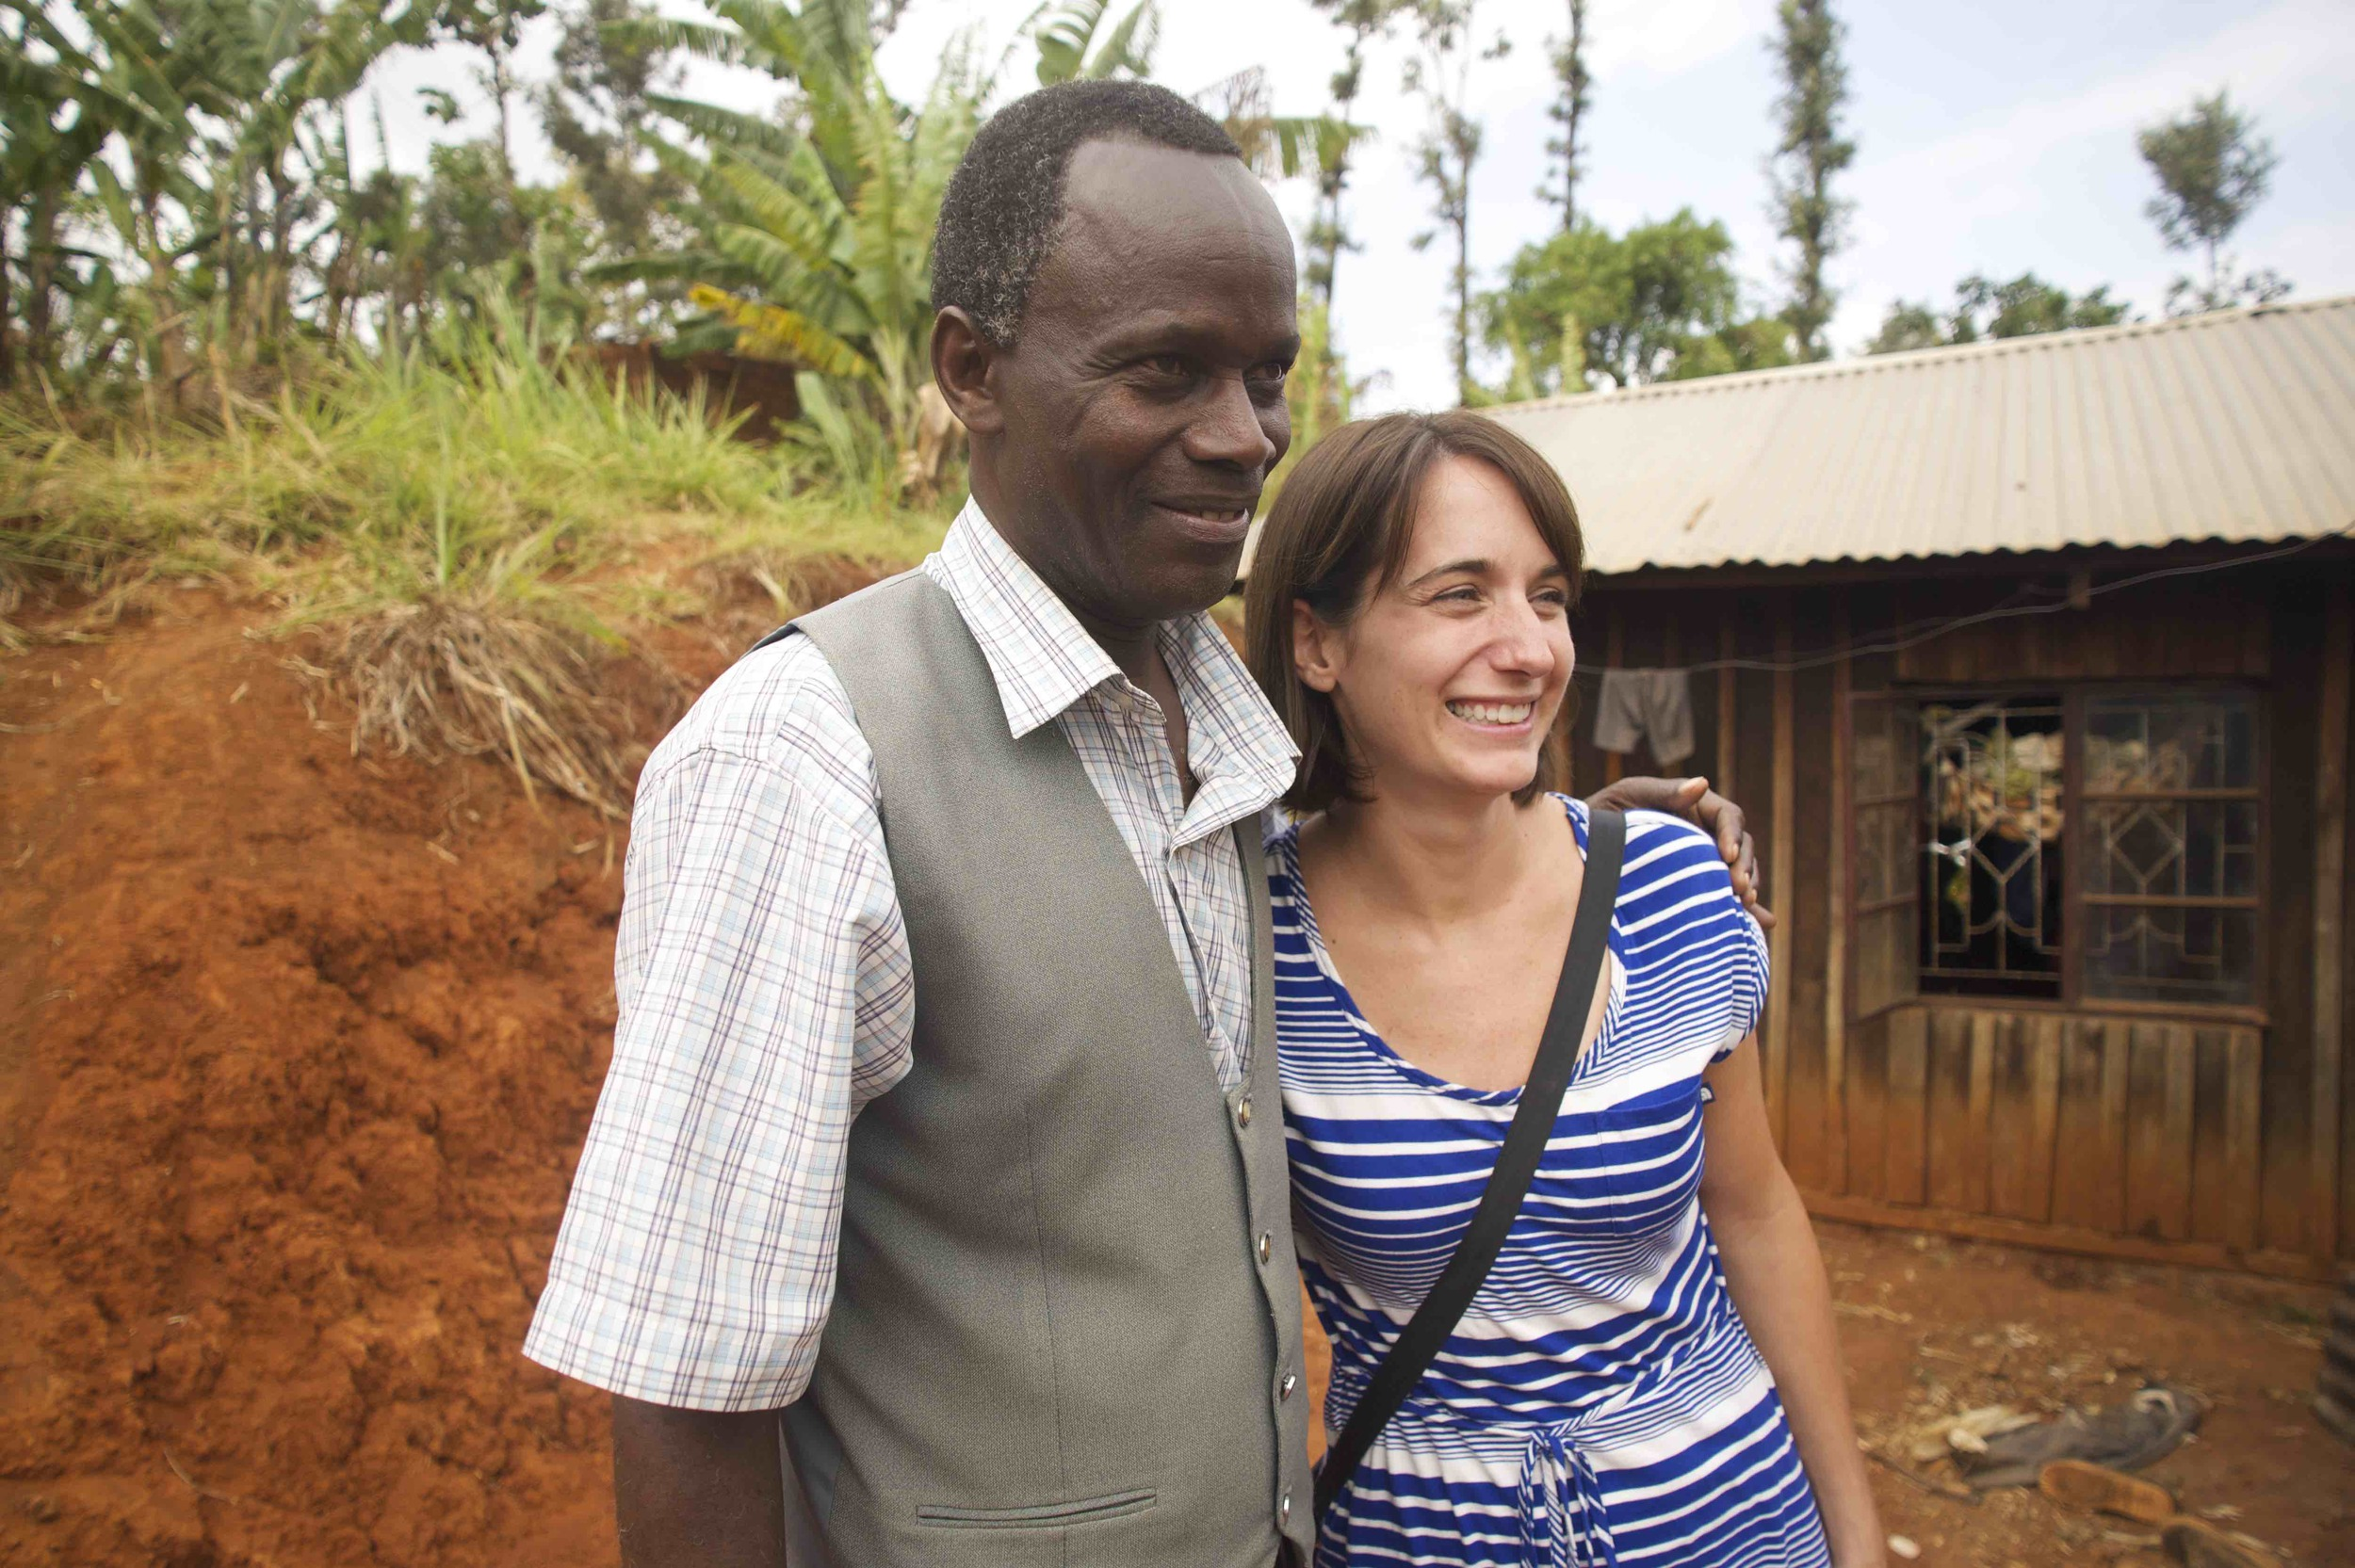 For the Good Period's Programs Director Molly Secor-Turner with longtime friend Josphat Tsuma Garama near the Faraja Family Resource Center in Chogoria. Josphat and his wife Millicent Garama have worked alongside Molly and her mother Sharon for nearly two decades to improve the welfare of underserved families in Chogoria.